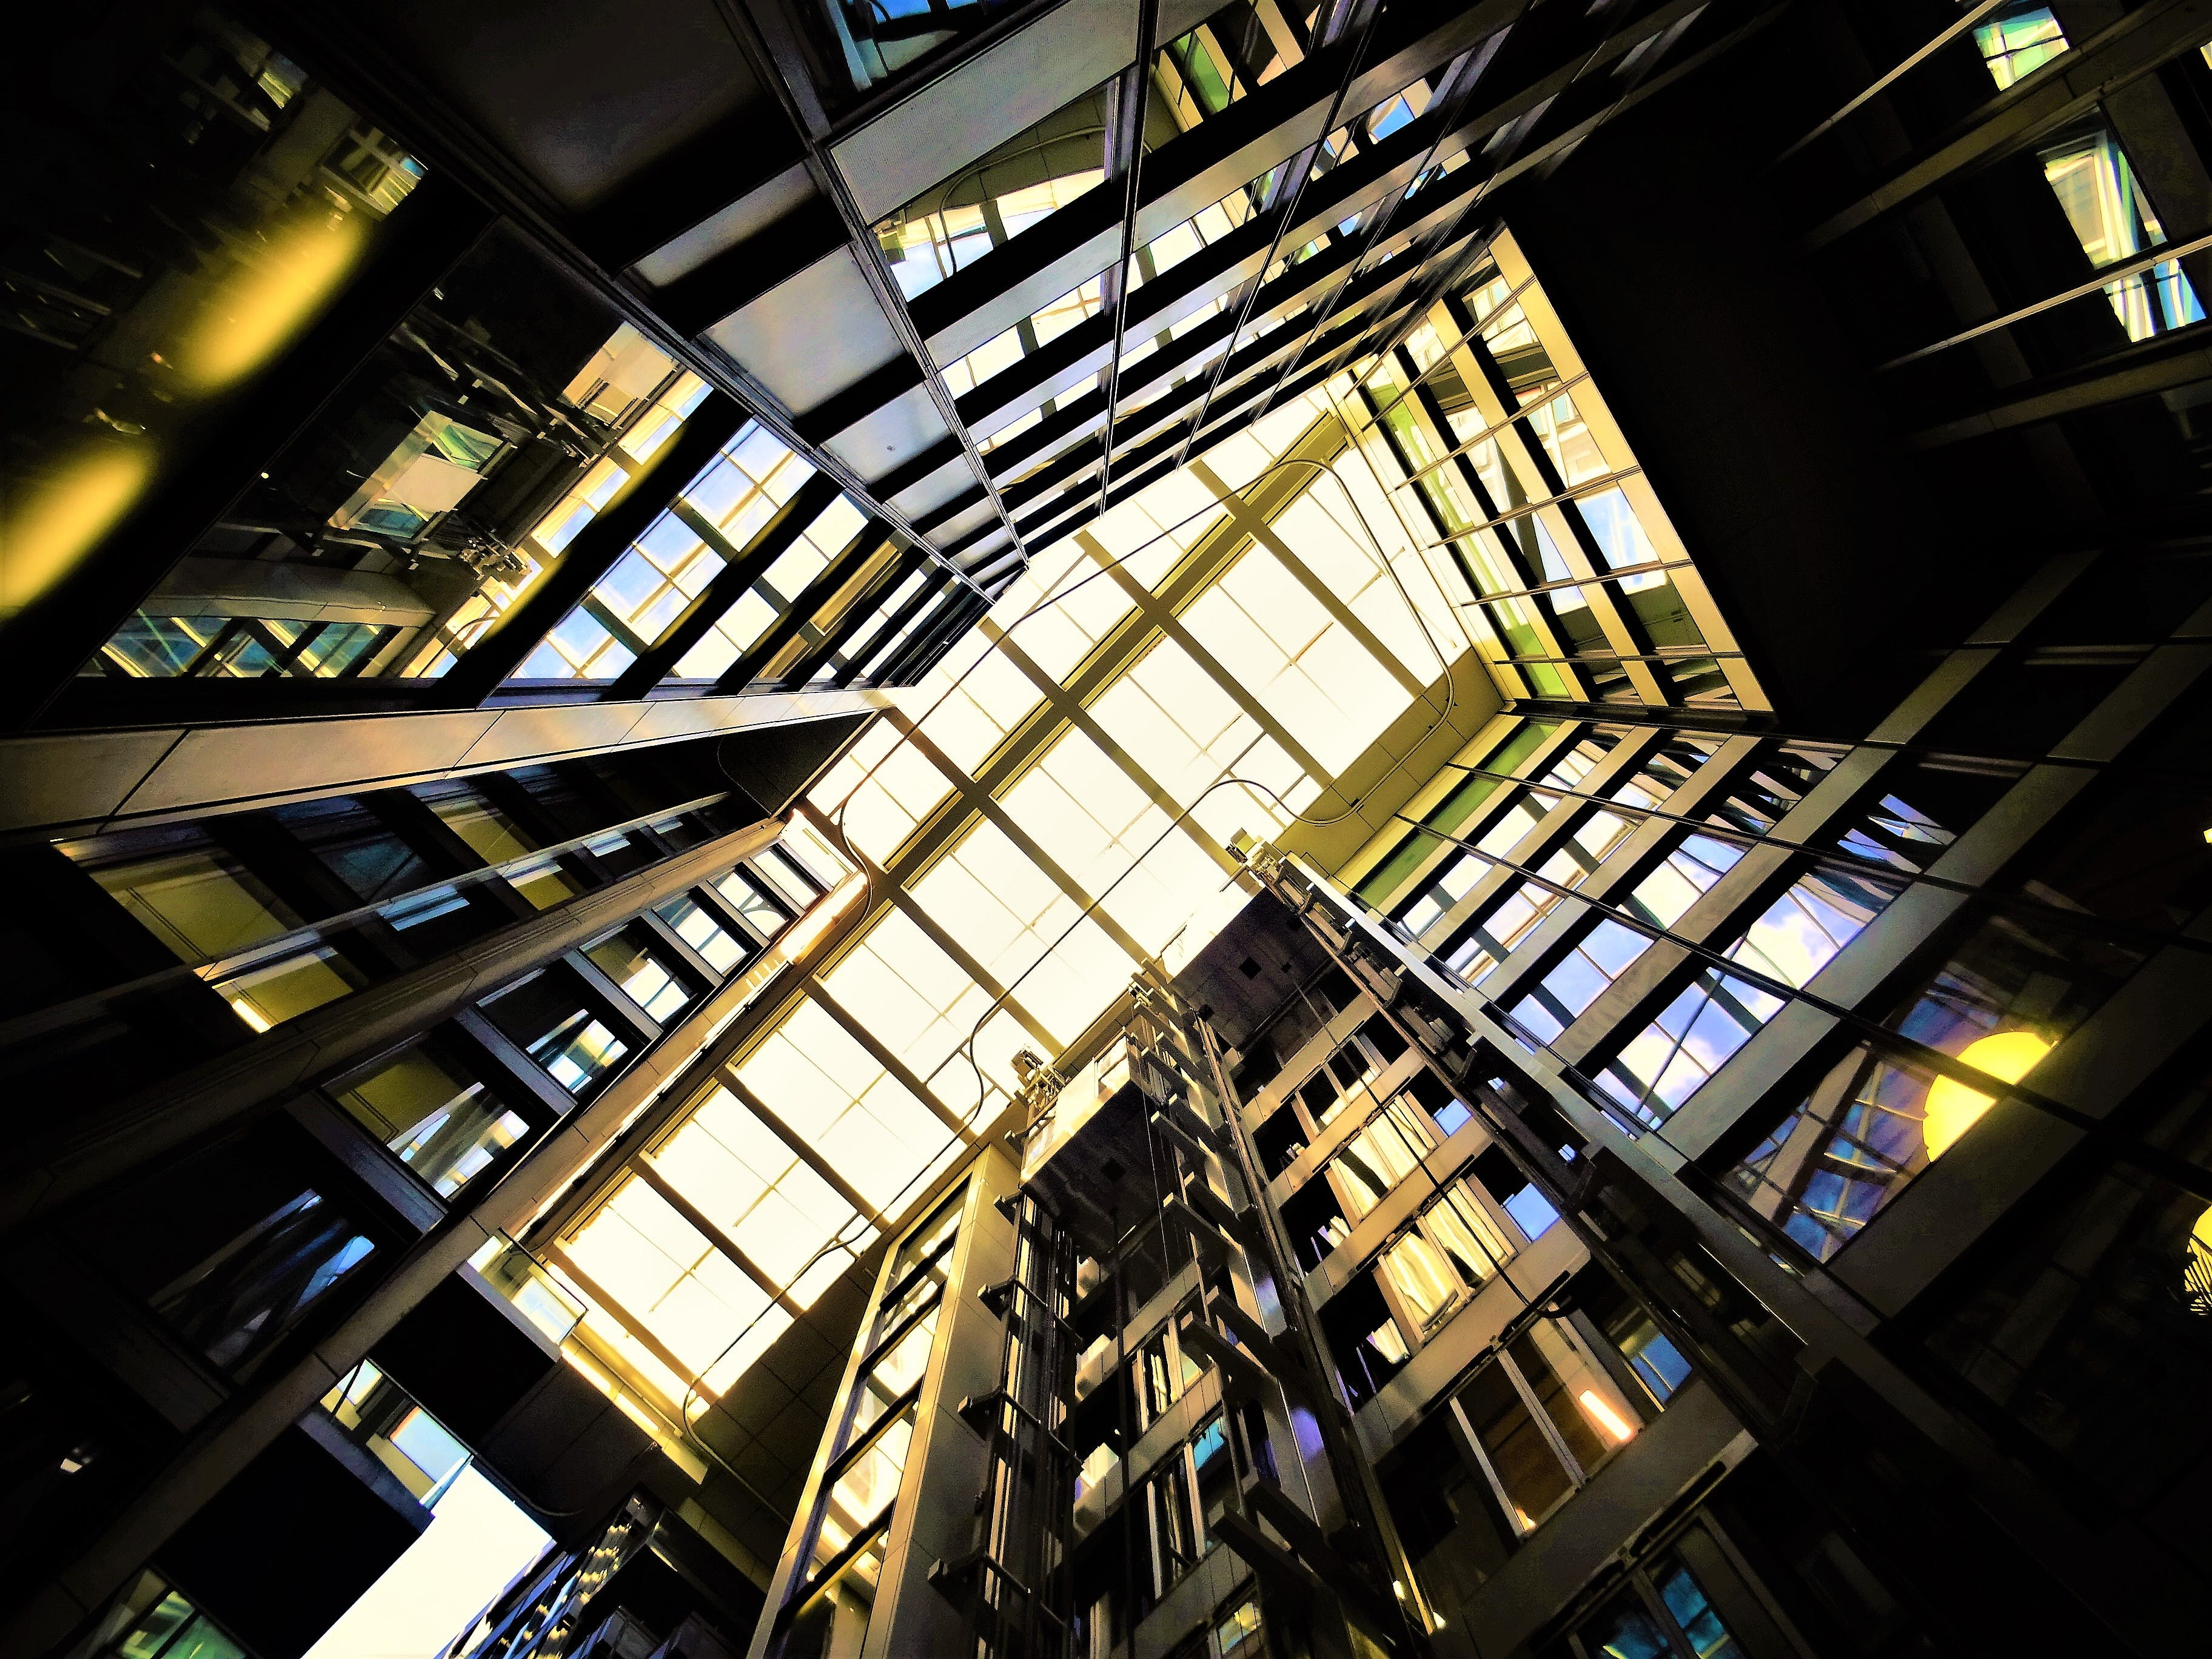 Low Angle Photography of Building Interior